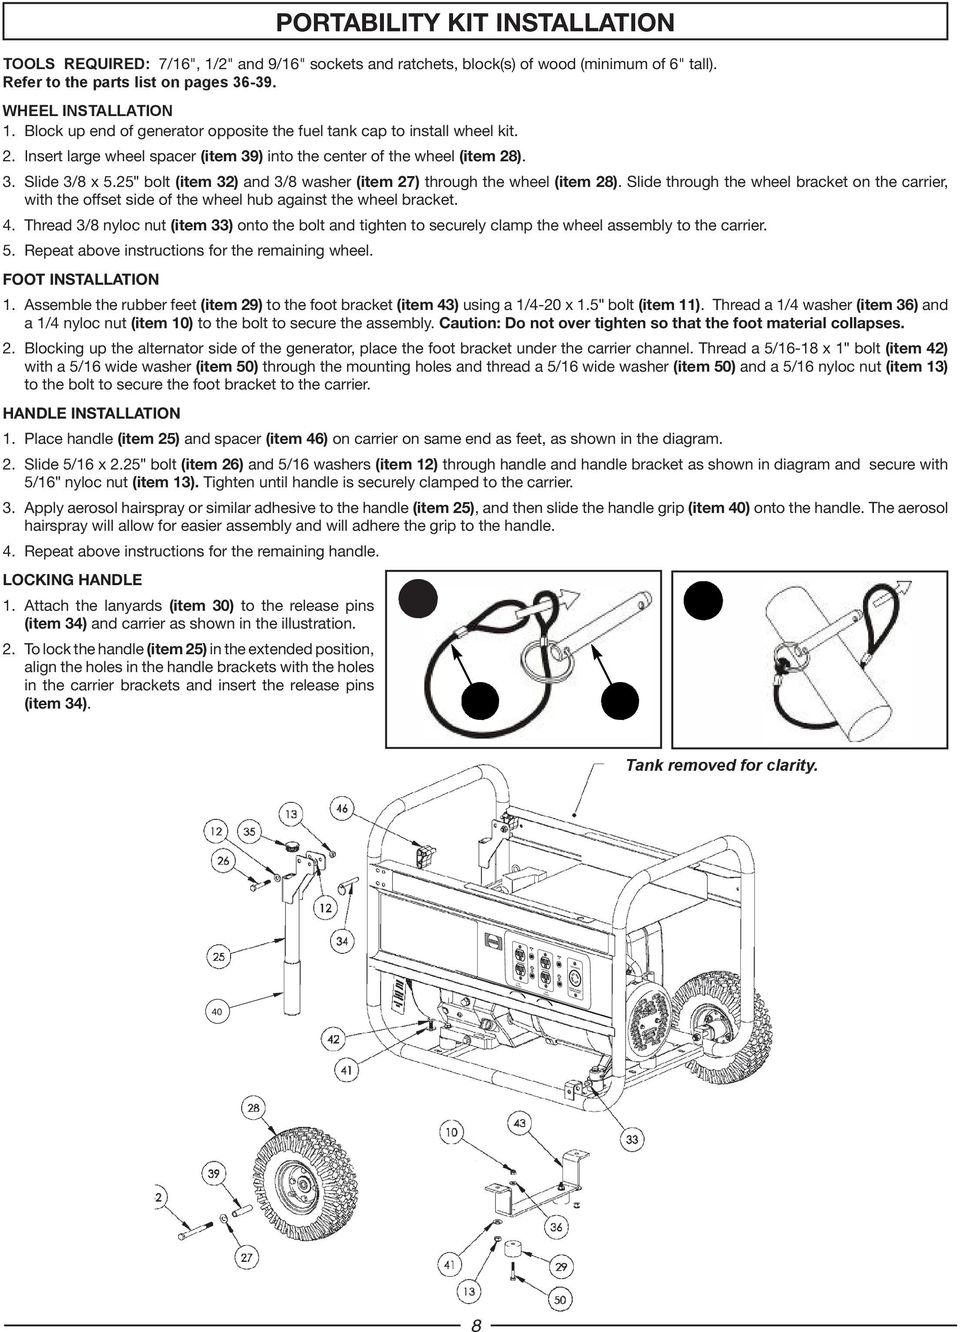 "Insert large wheel spacer (item 39) into the center of the wheel (item 28). 3. Slide 3/8 x 5.25"" bolt (item 32) and 3/8 washer (item 27) through the wheel (item 28)."